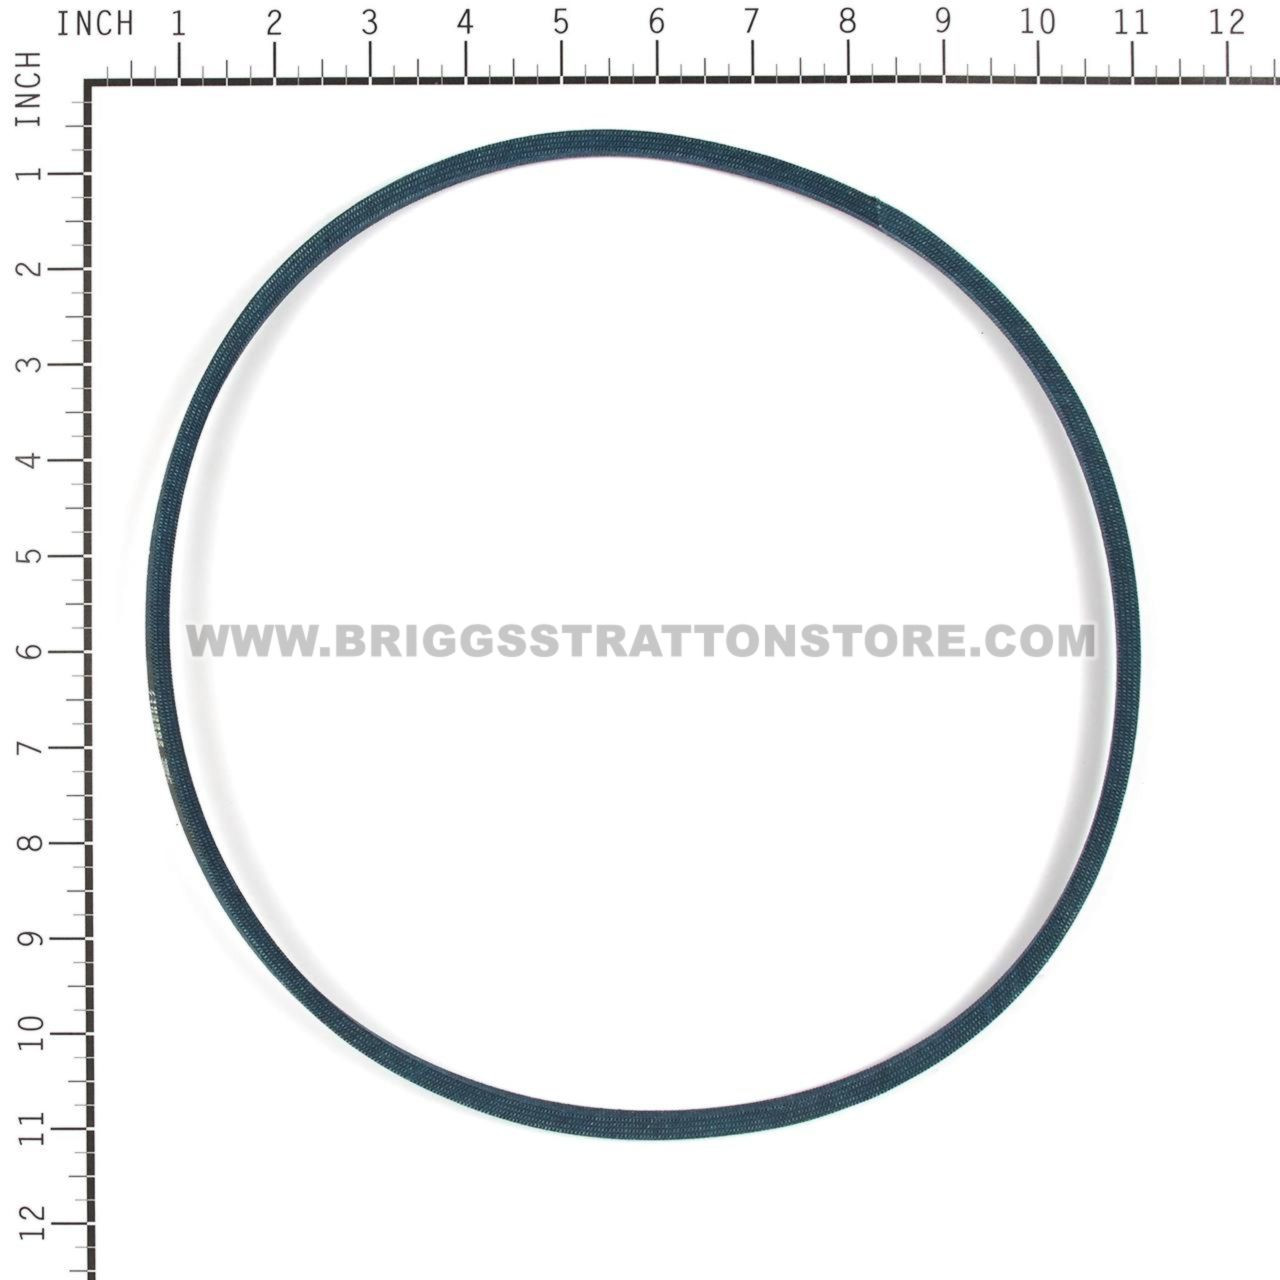 trac dr rwd Briggs /& Stratton OEM 7103364YP replacement belt